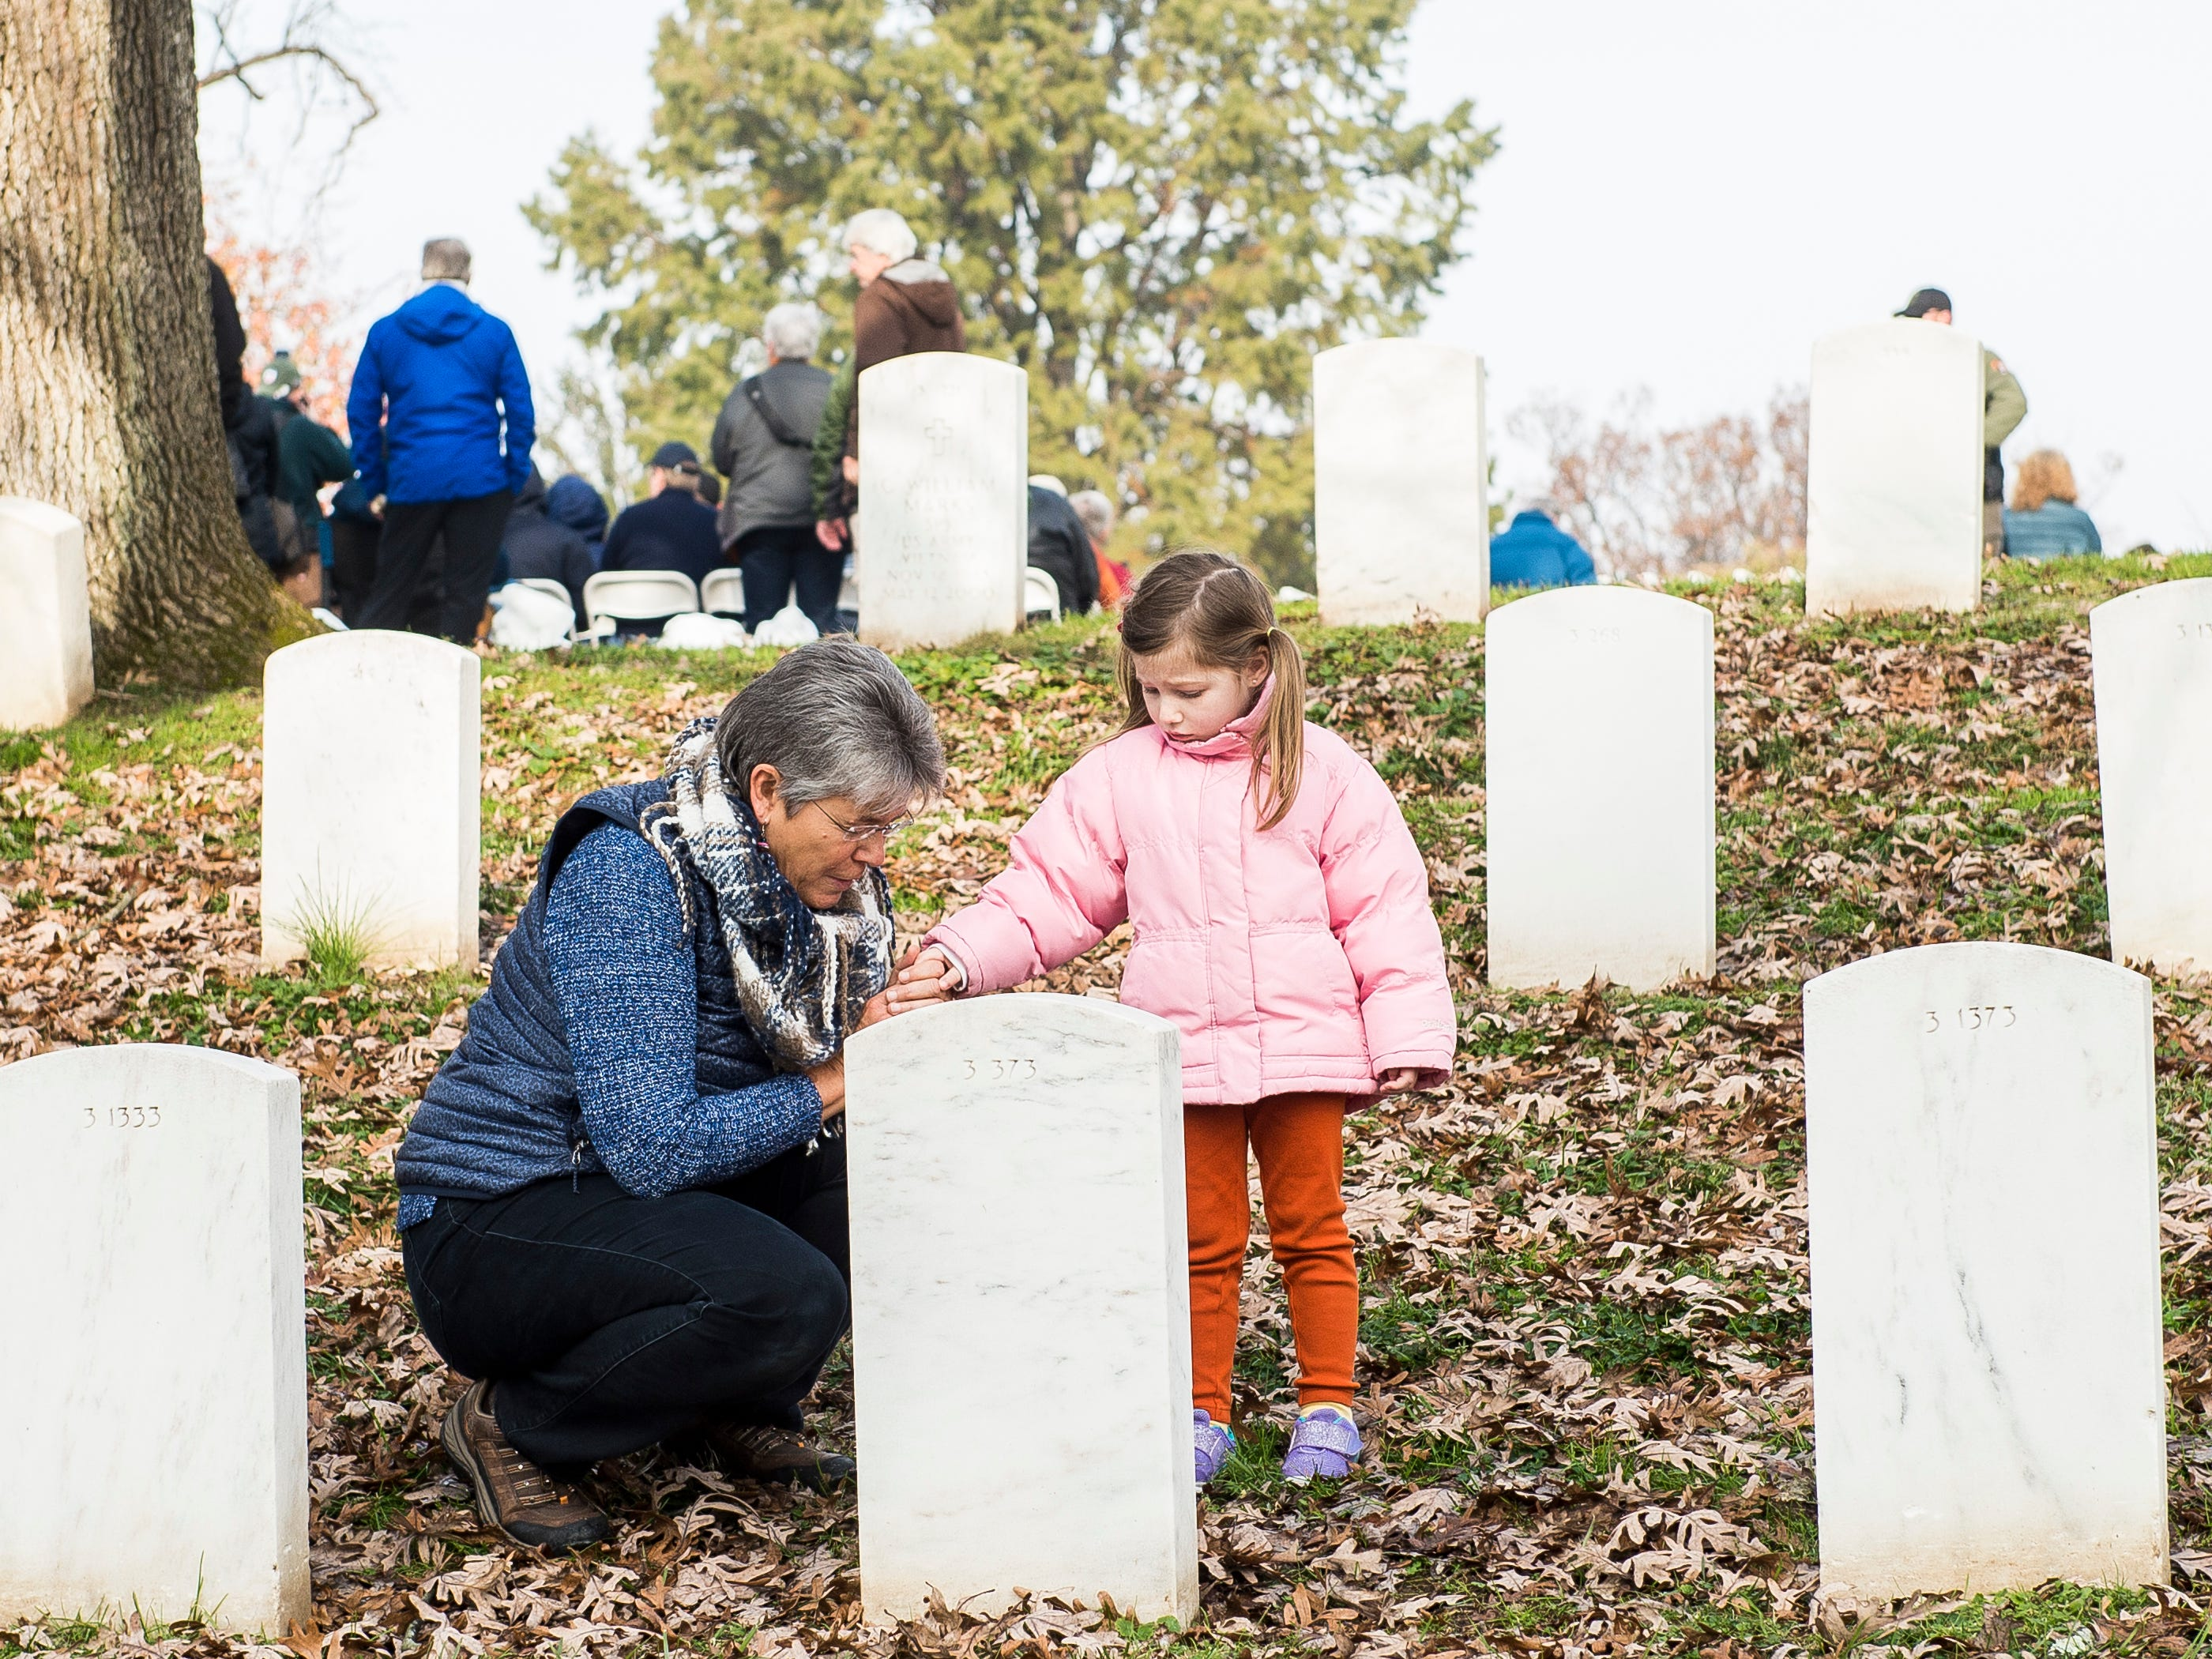 Nancy Kramer takes the hand of her four-year-old granddaughter, Charlotte Bohnenblust, as they visit graves in Gettysburg National Cemetery on Dedication Day Monday, November, 19, 2018.